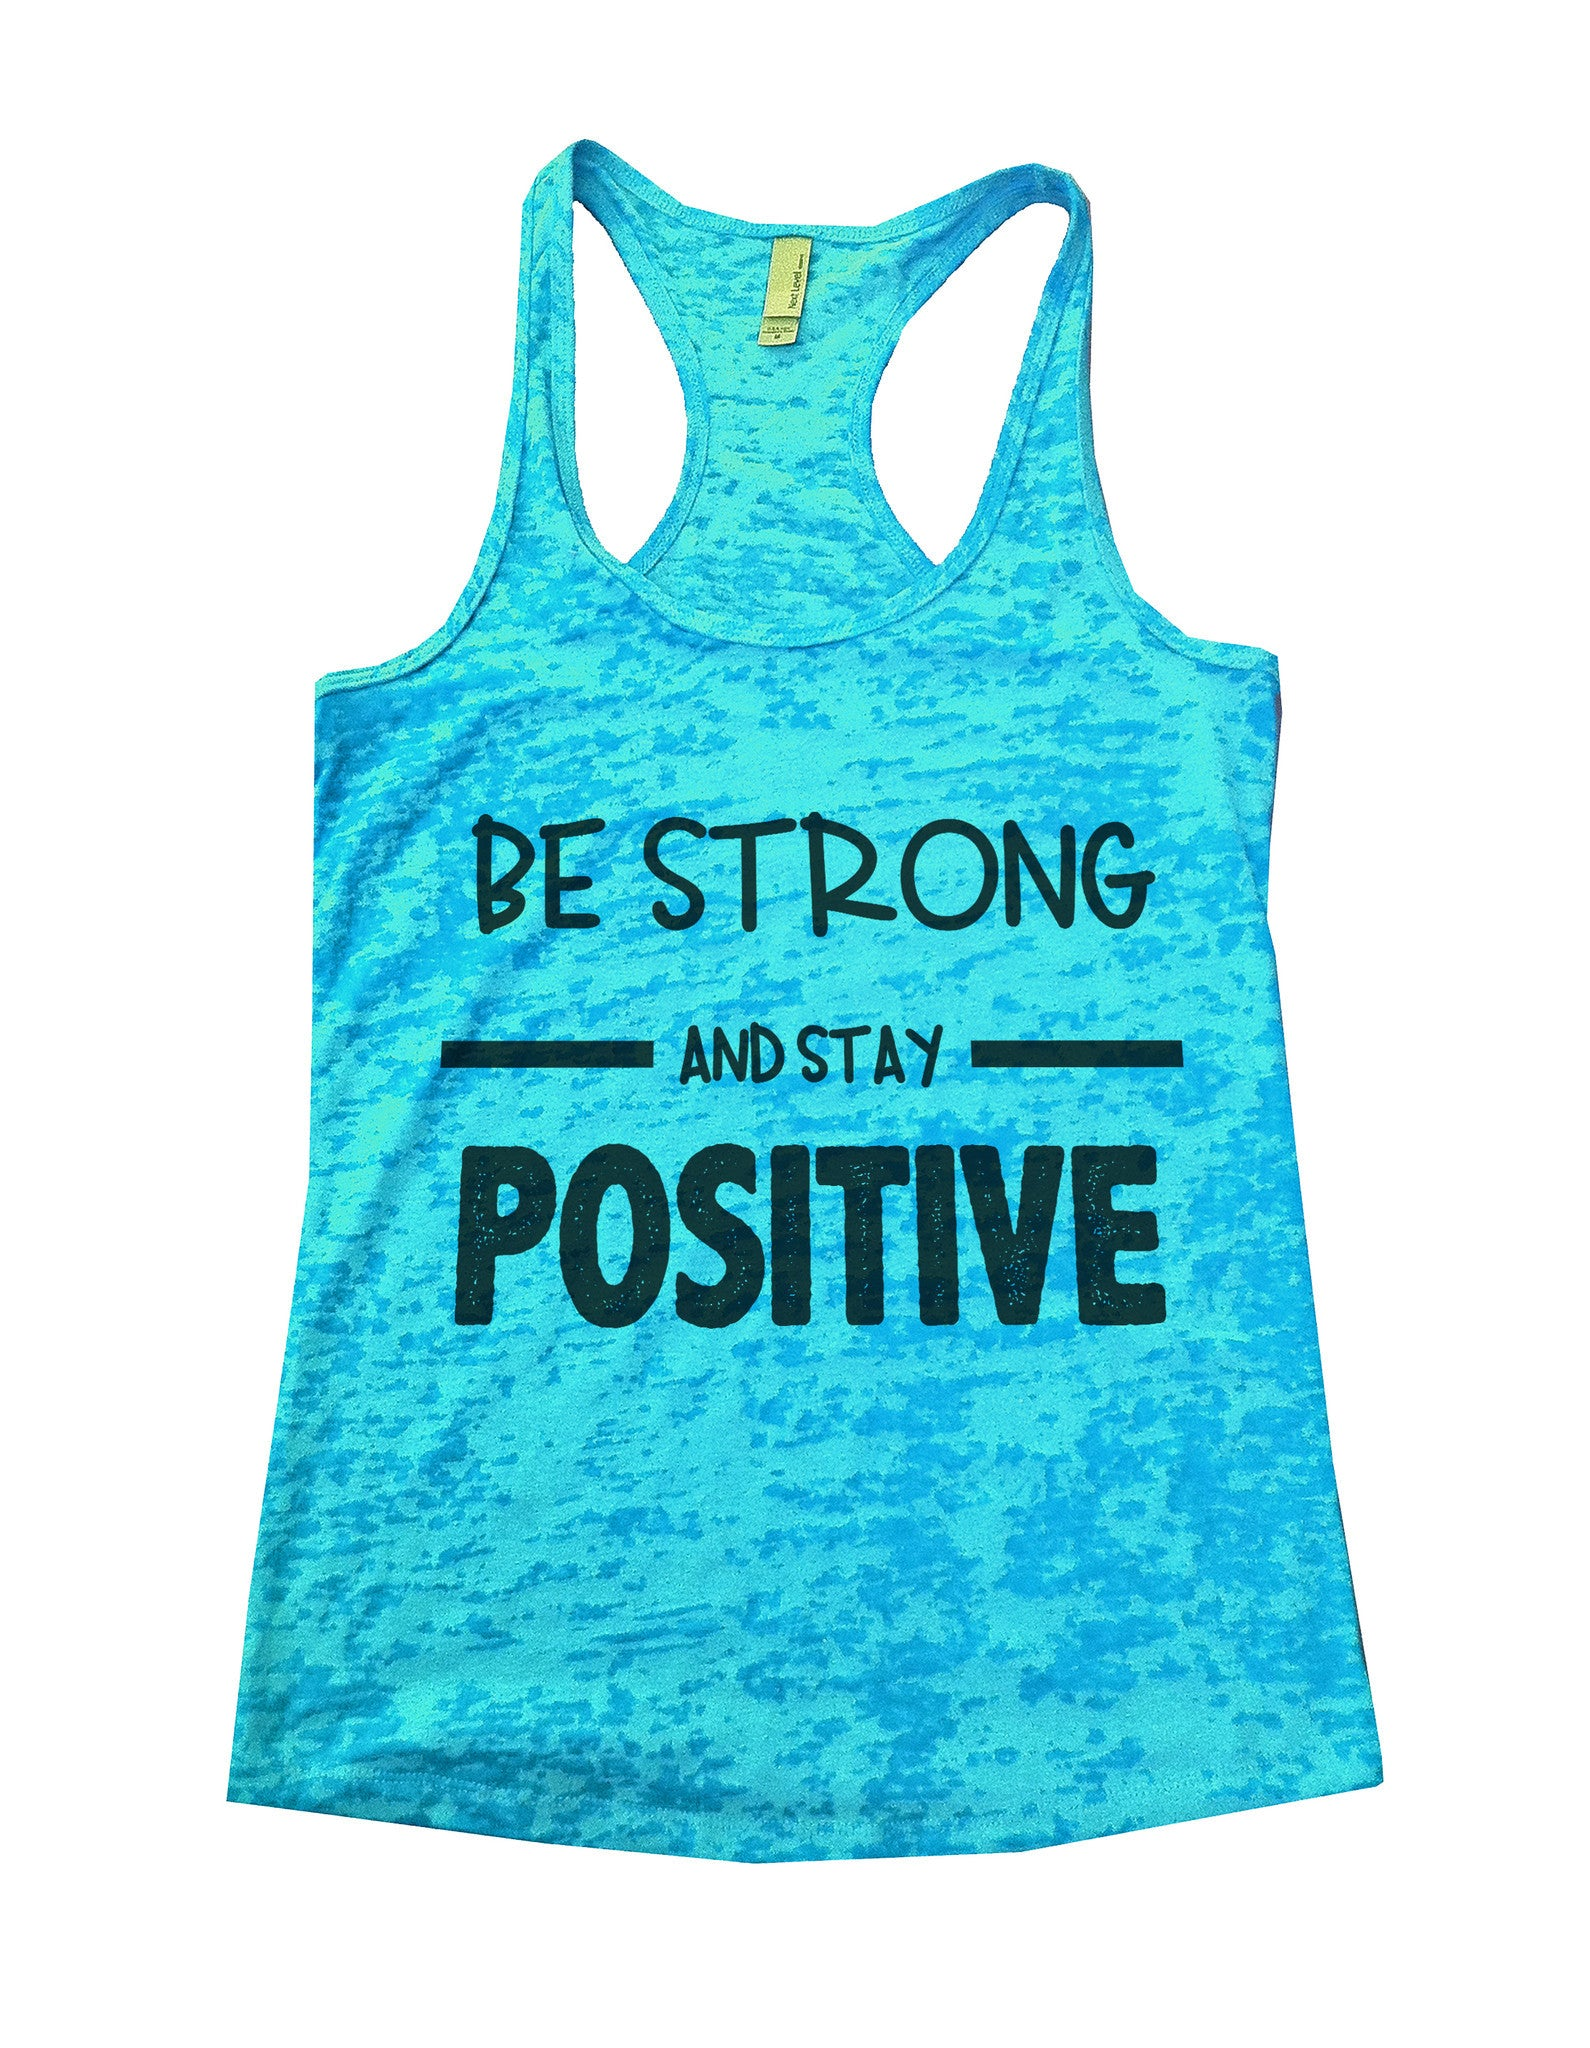 Be Strong And Stay Positive Womens Burnout Tank Top By BurnoutTankTops.com - 657 - Funny Shirts Tank Tops Burnouts and Triblends  - 4